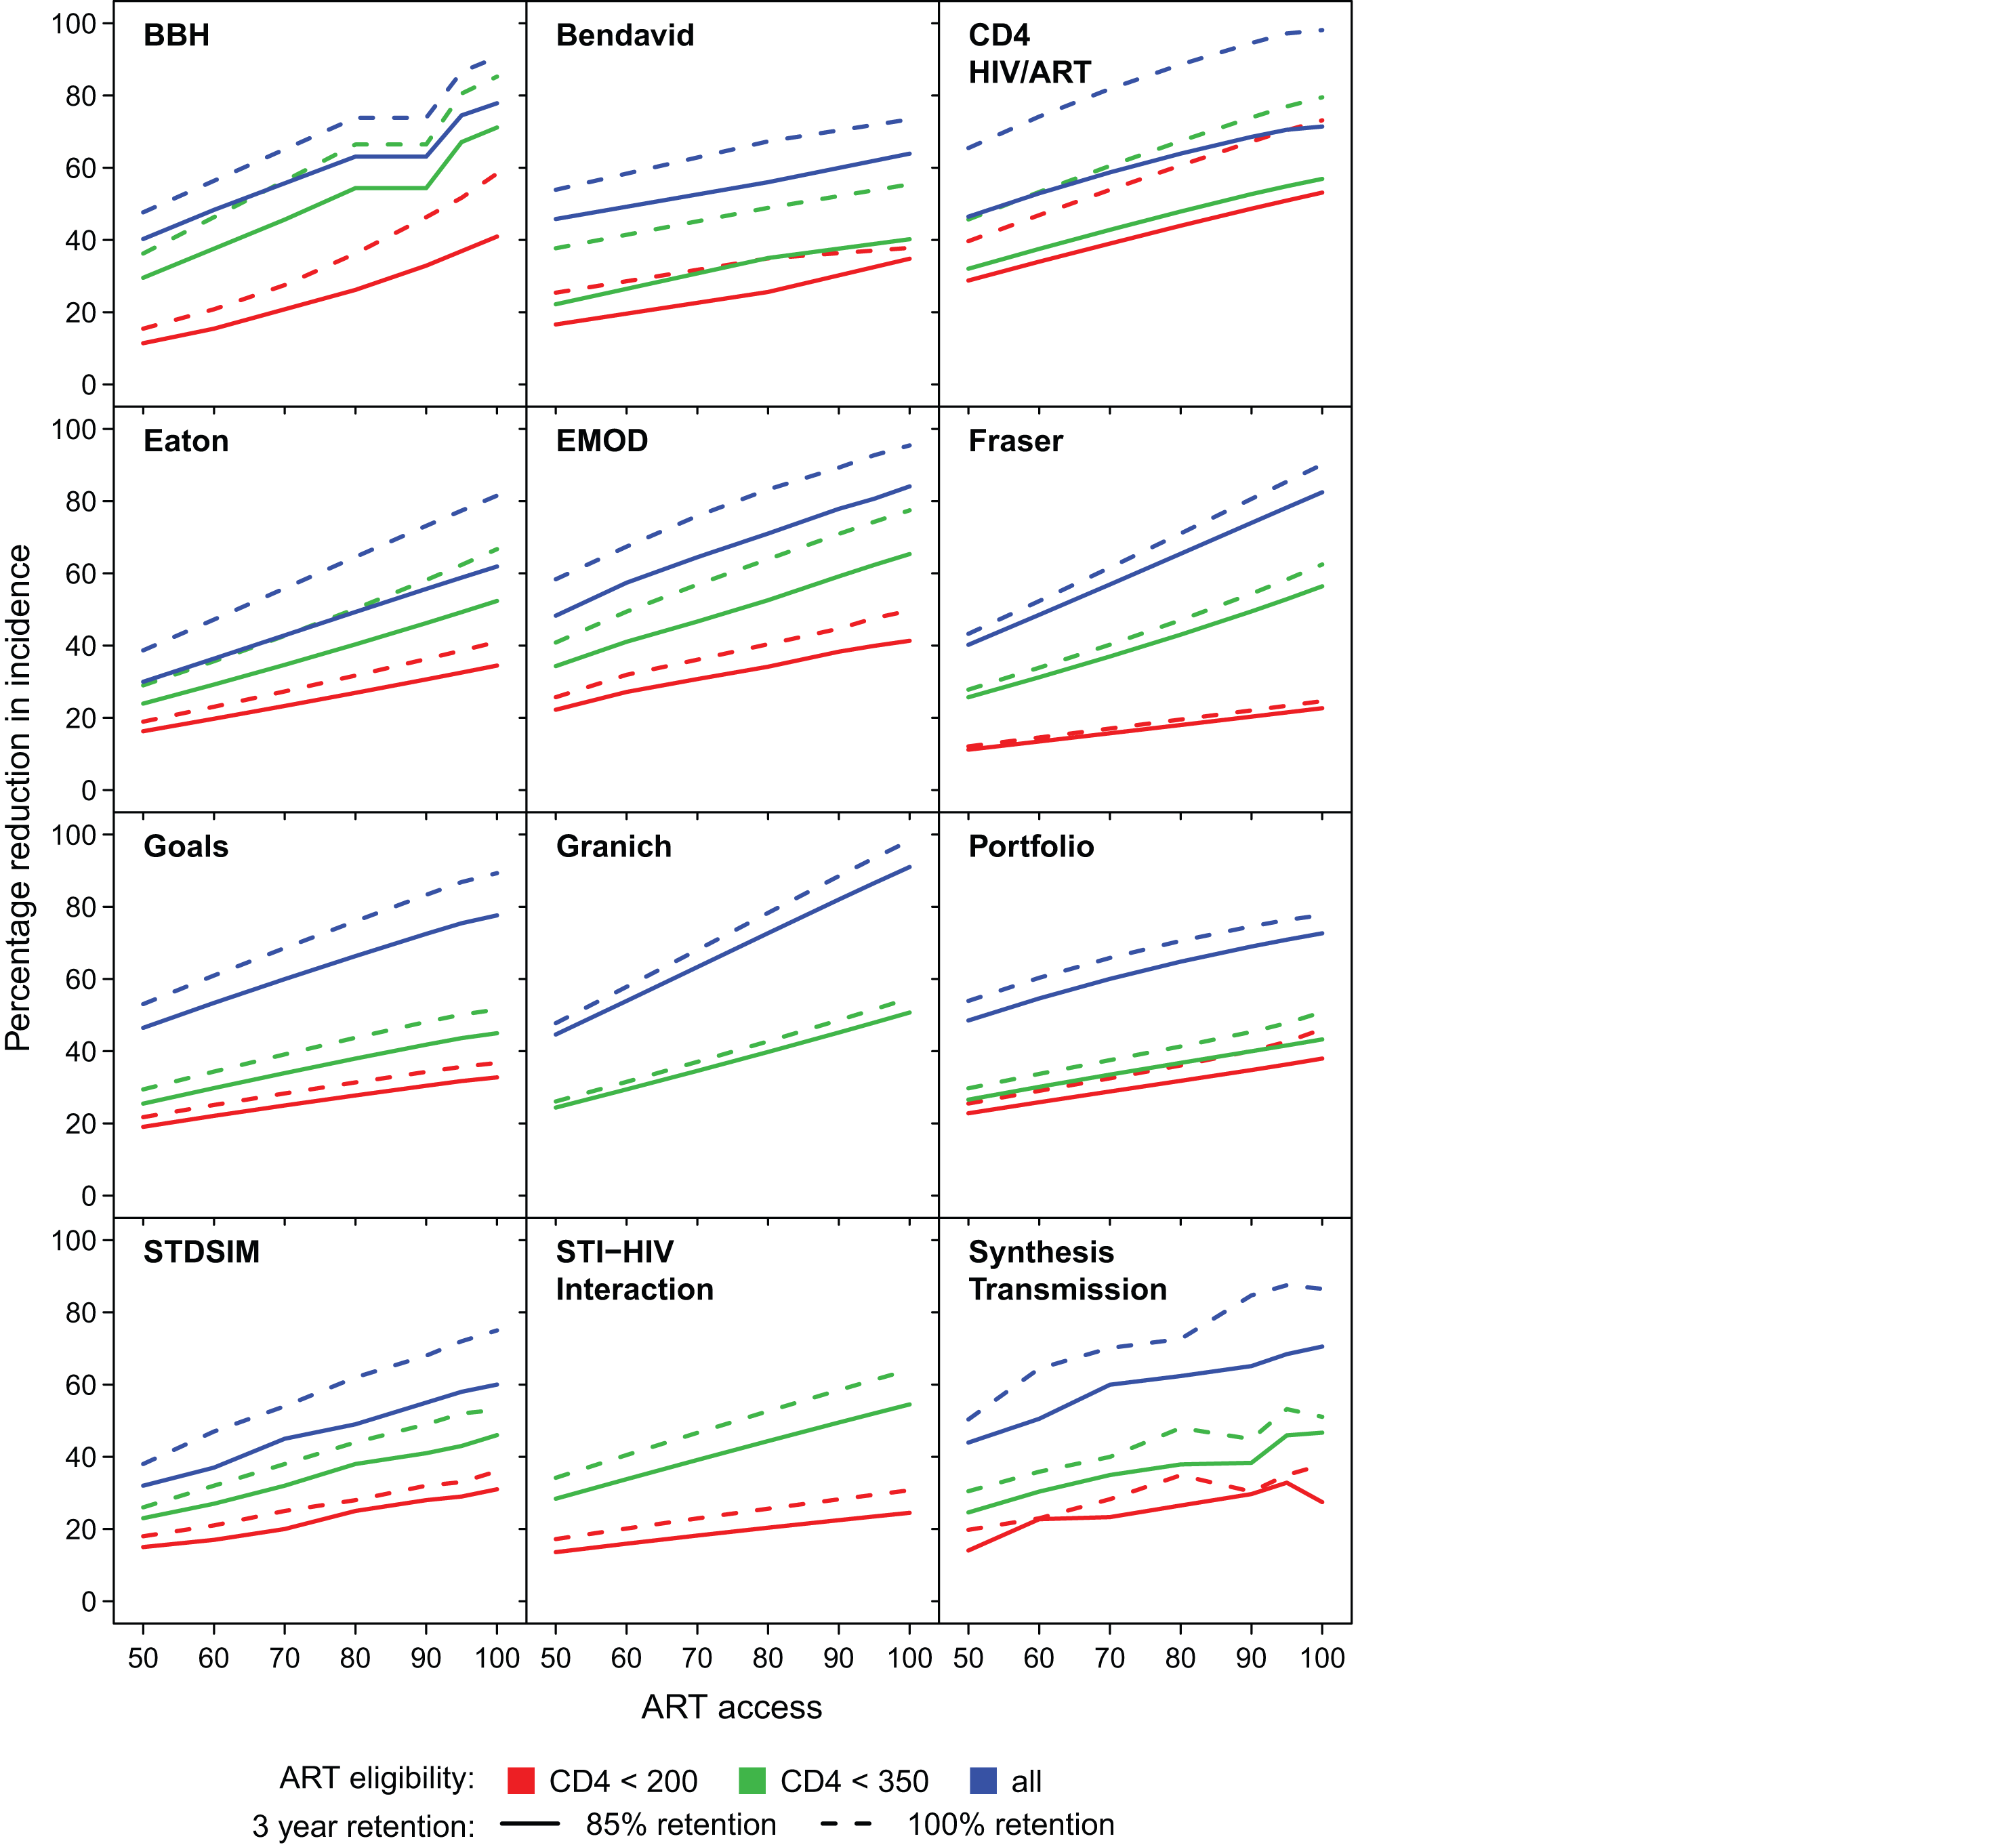 Proportion reduction in HIV incidence in year 2020.